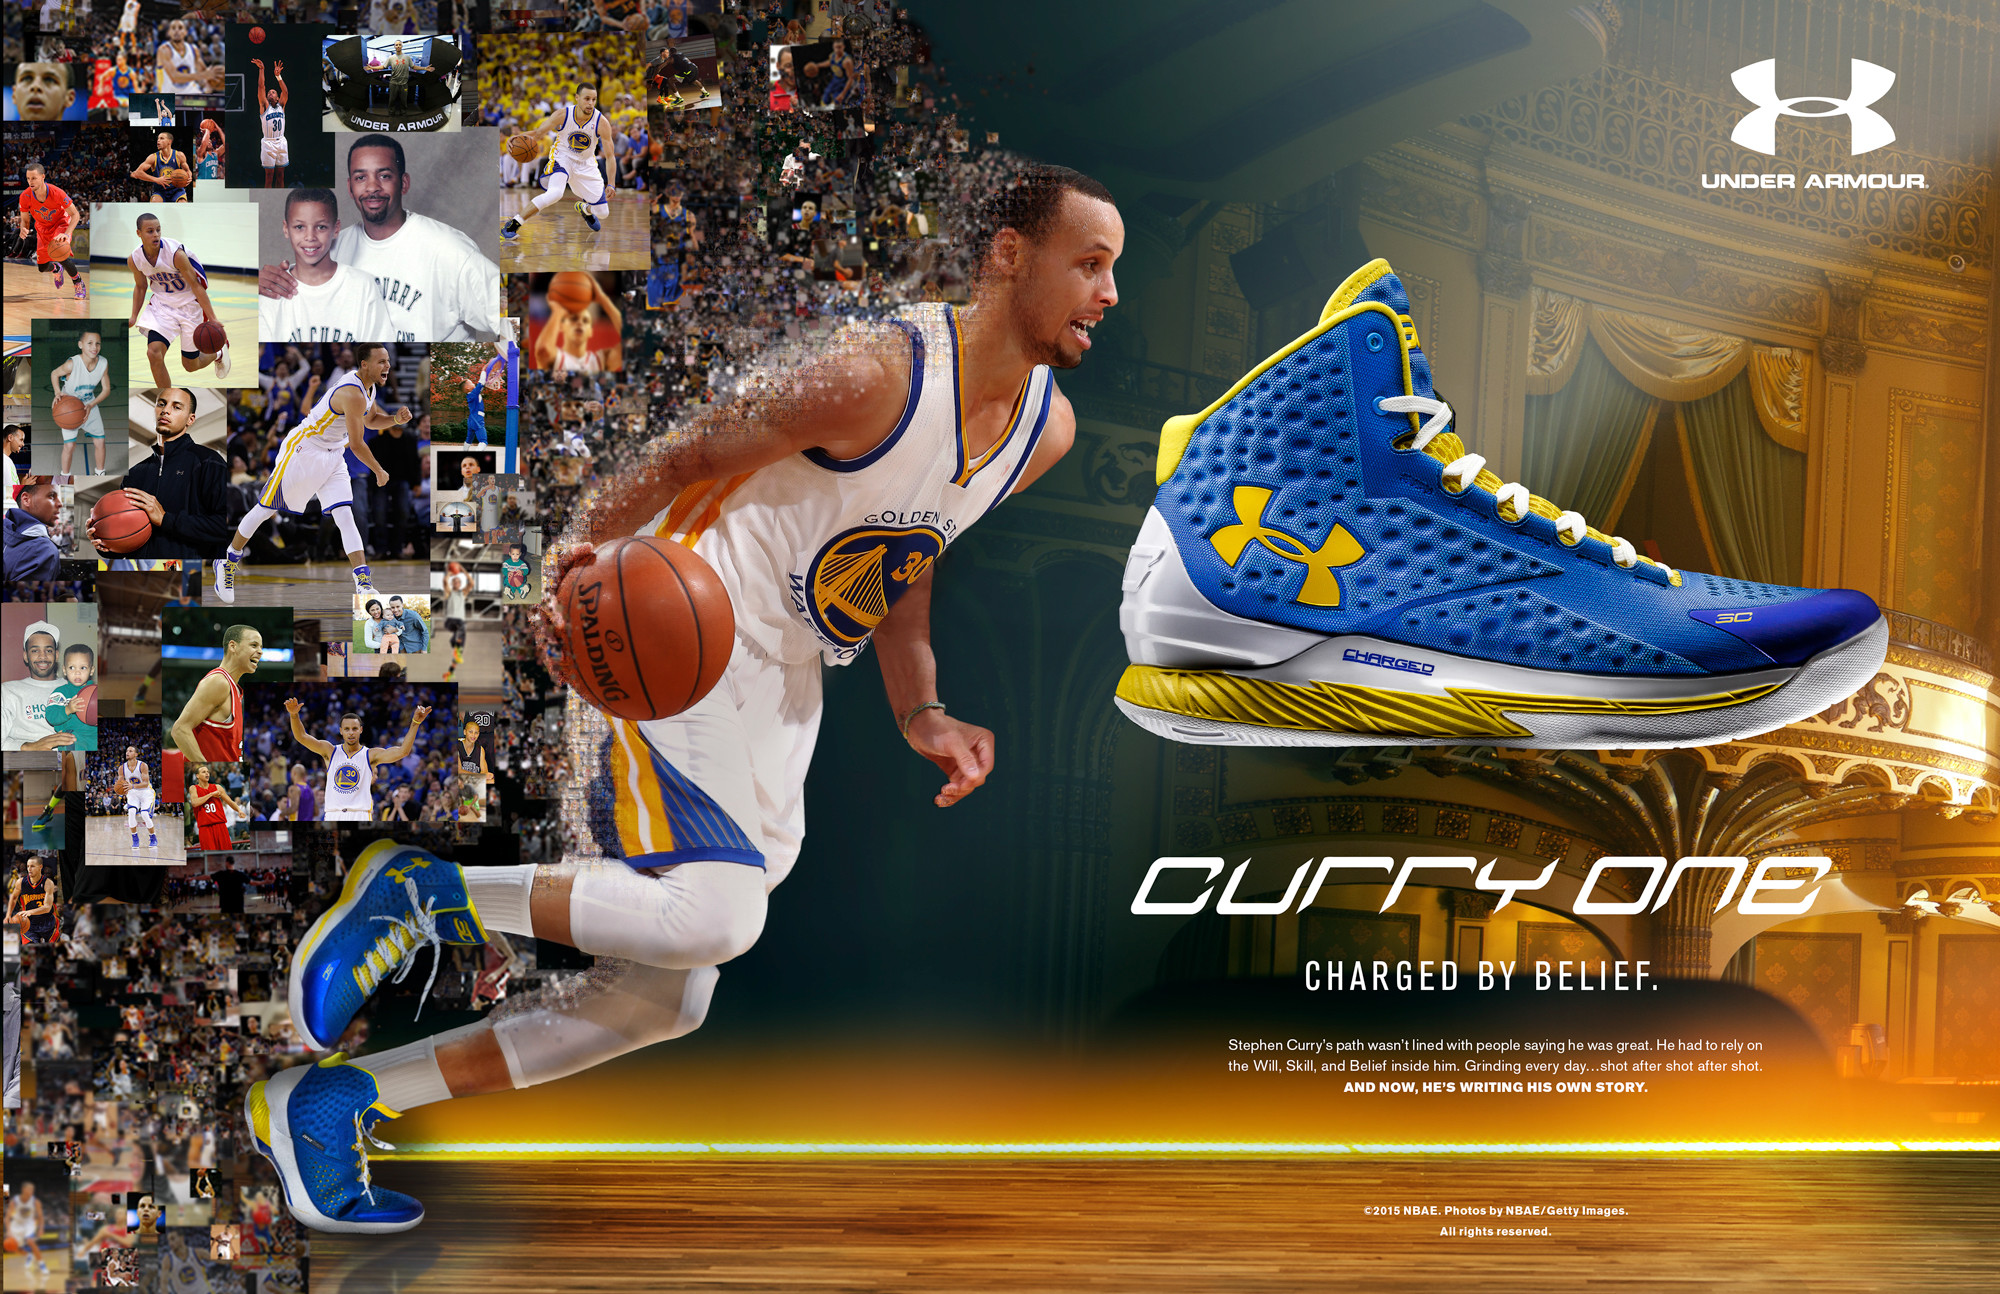 2000x1294 Curry One Charged by Belief